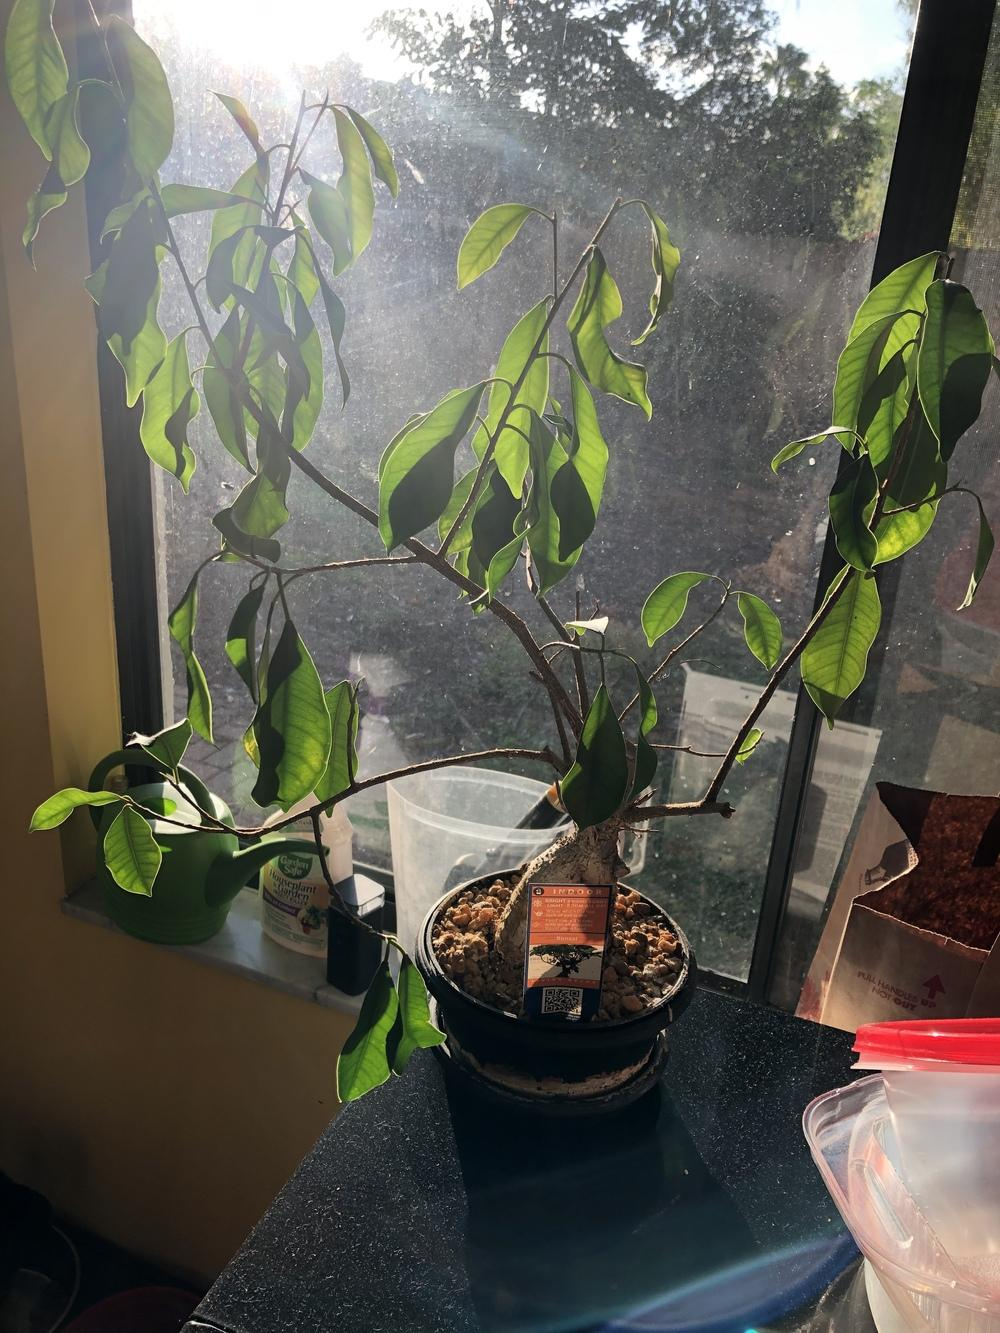 Ask A Question Forum Bonsai Tree Help Wilting And White Sediment Garden Org